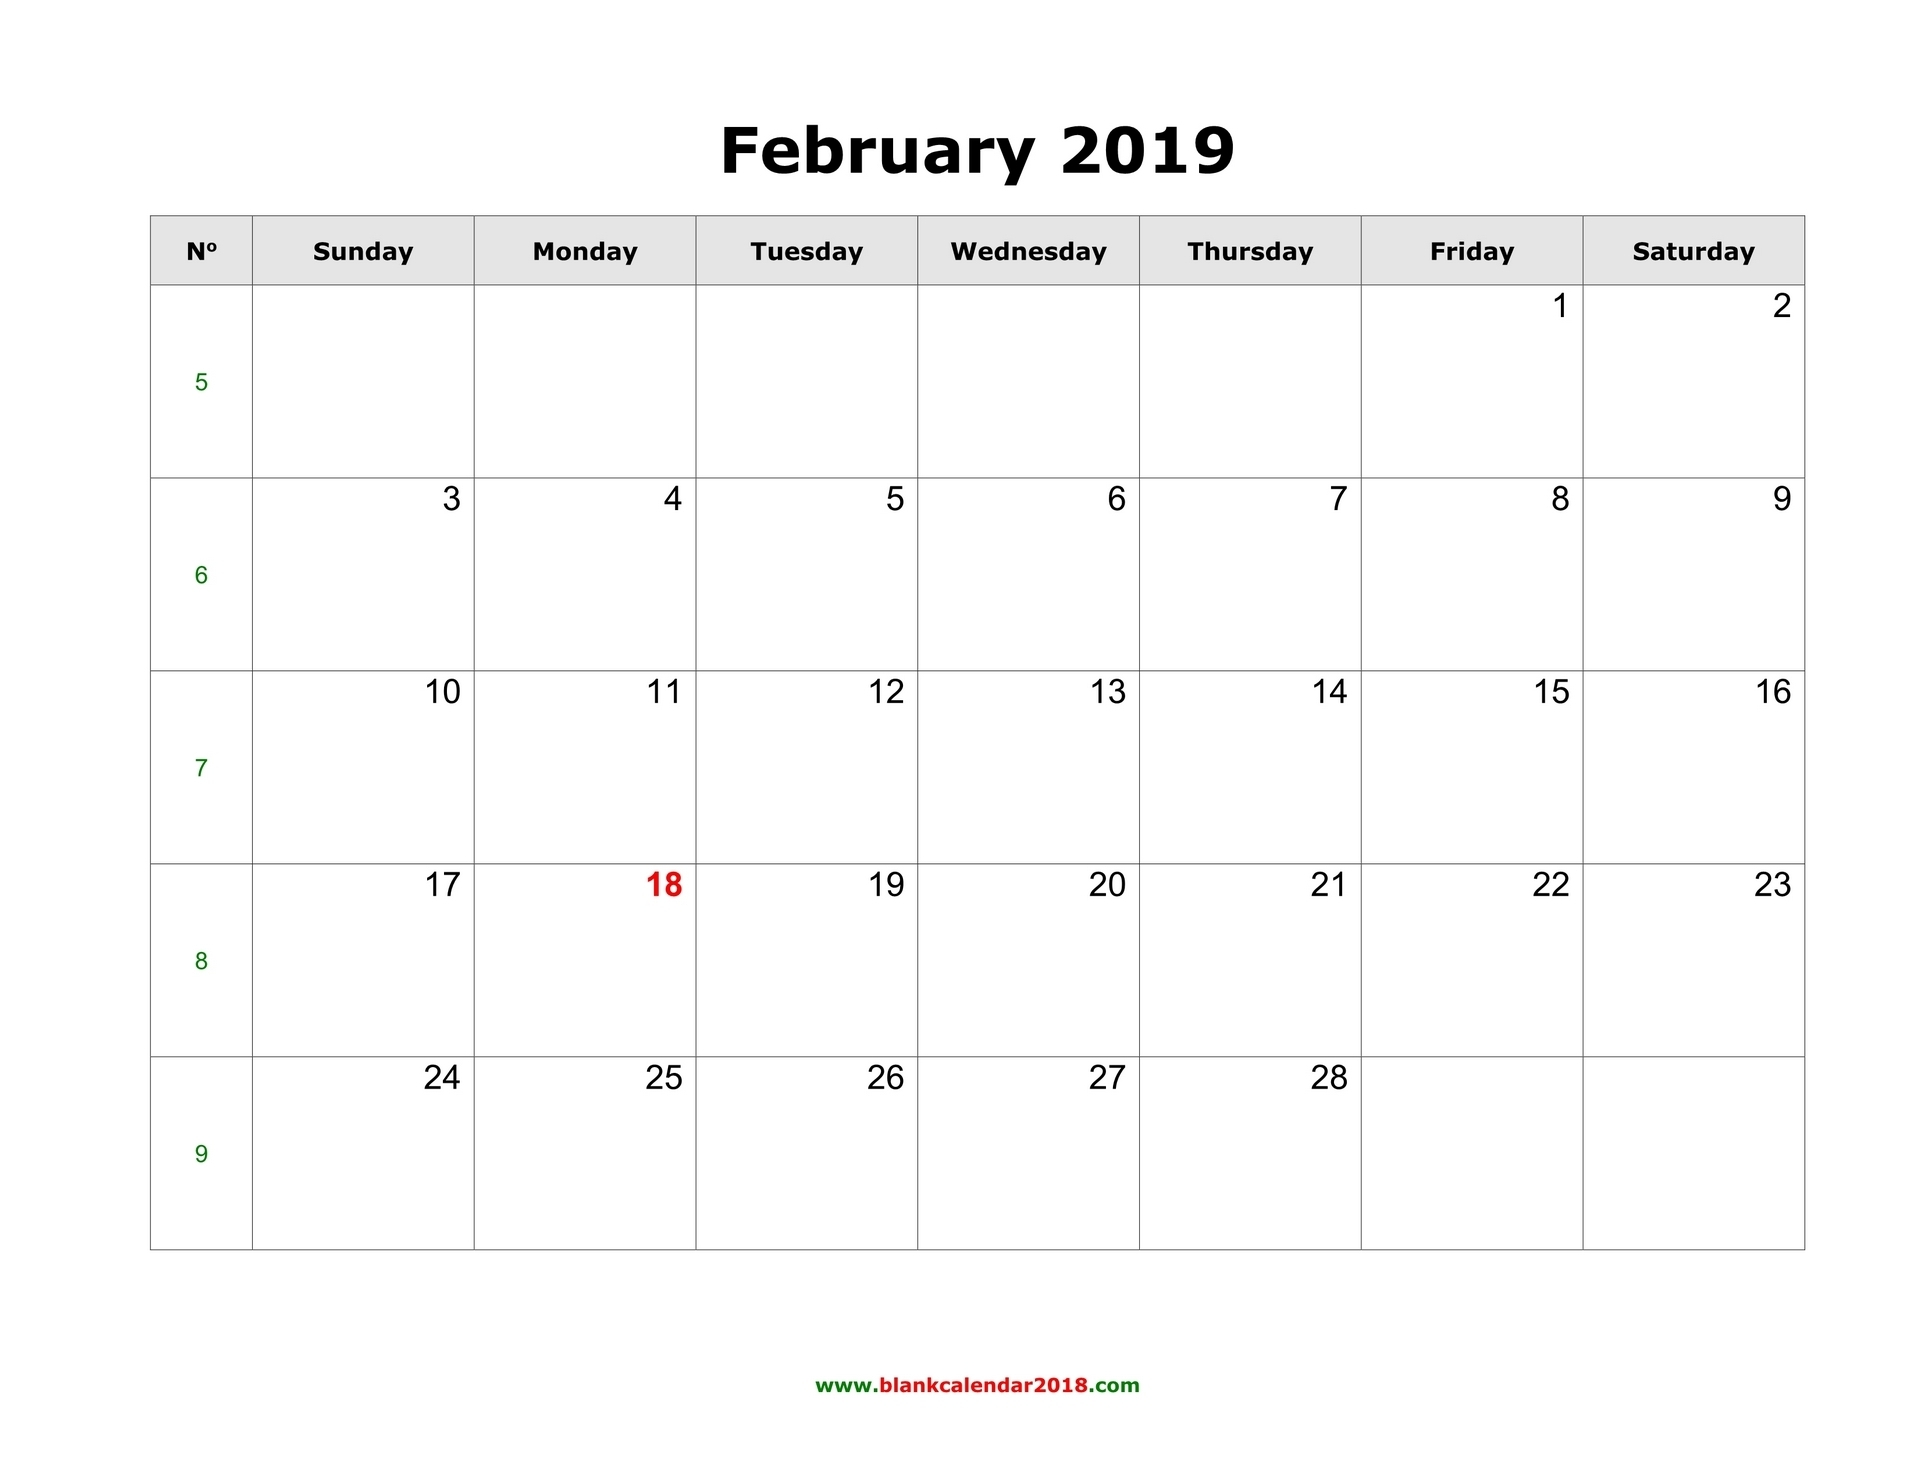 Blank Calendar For February 2019 intended for Blank Calendar With Only Weekdays